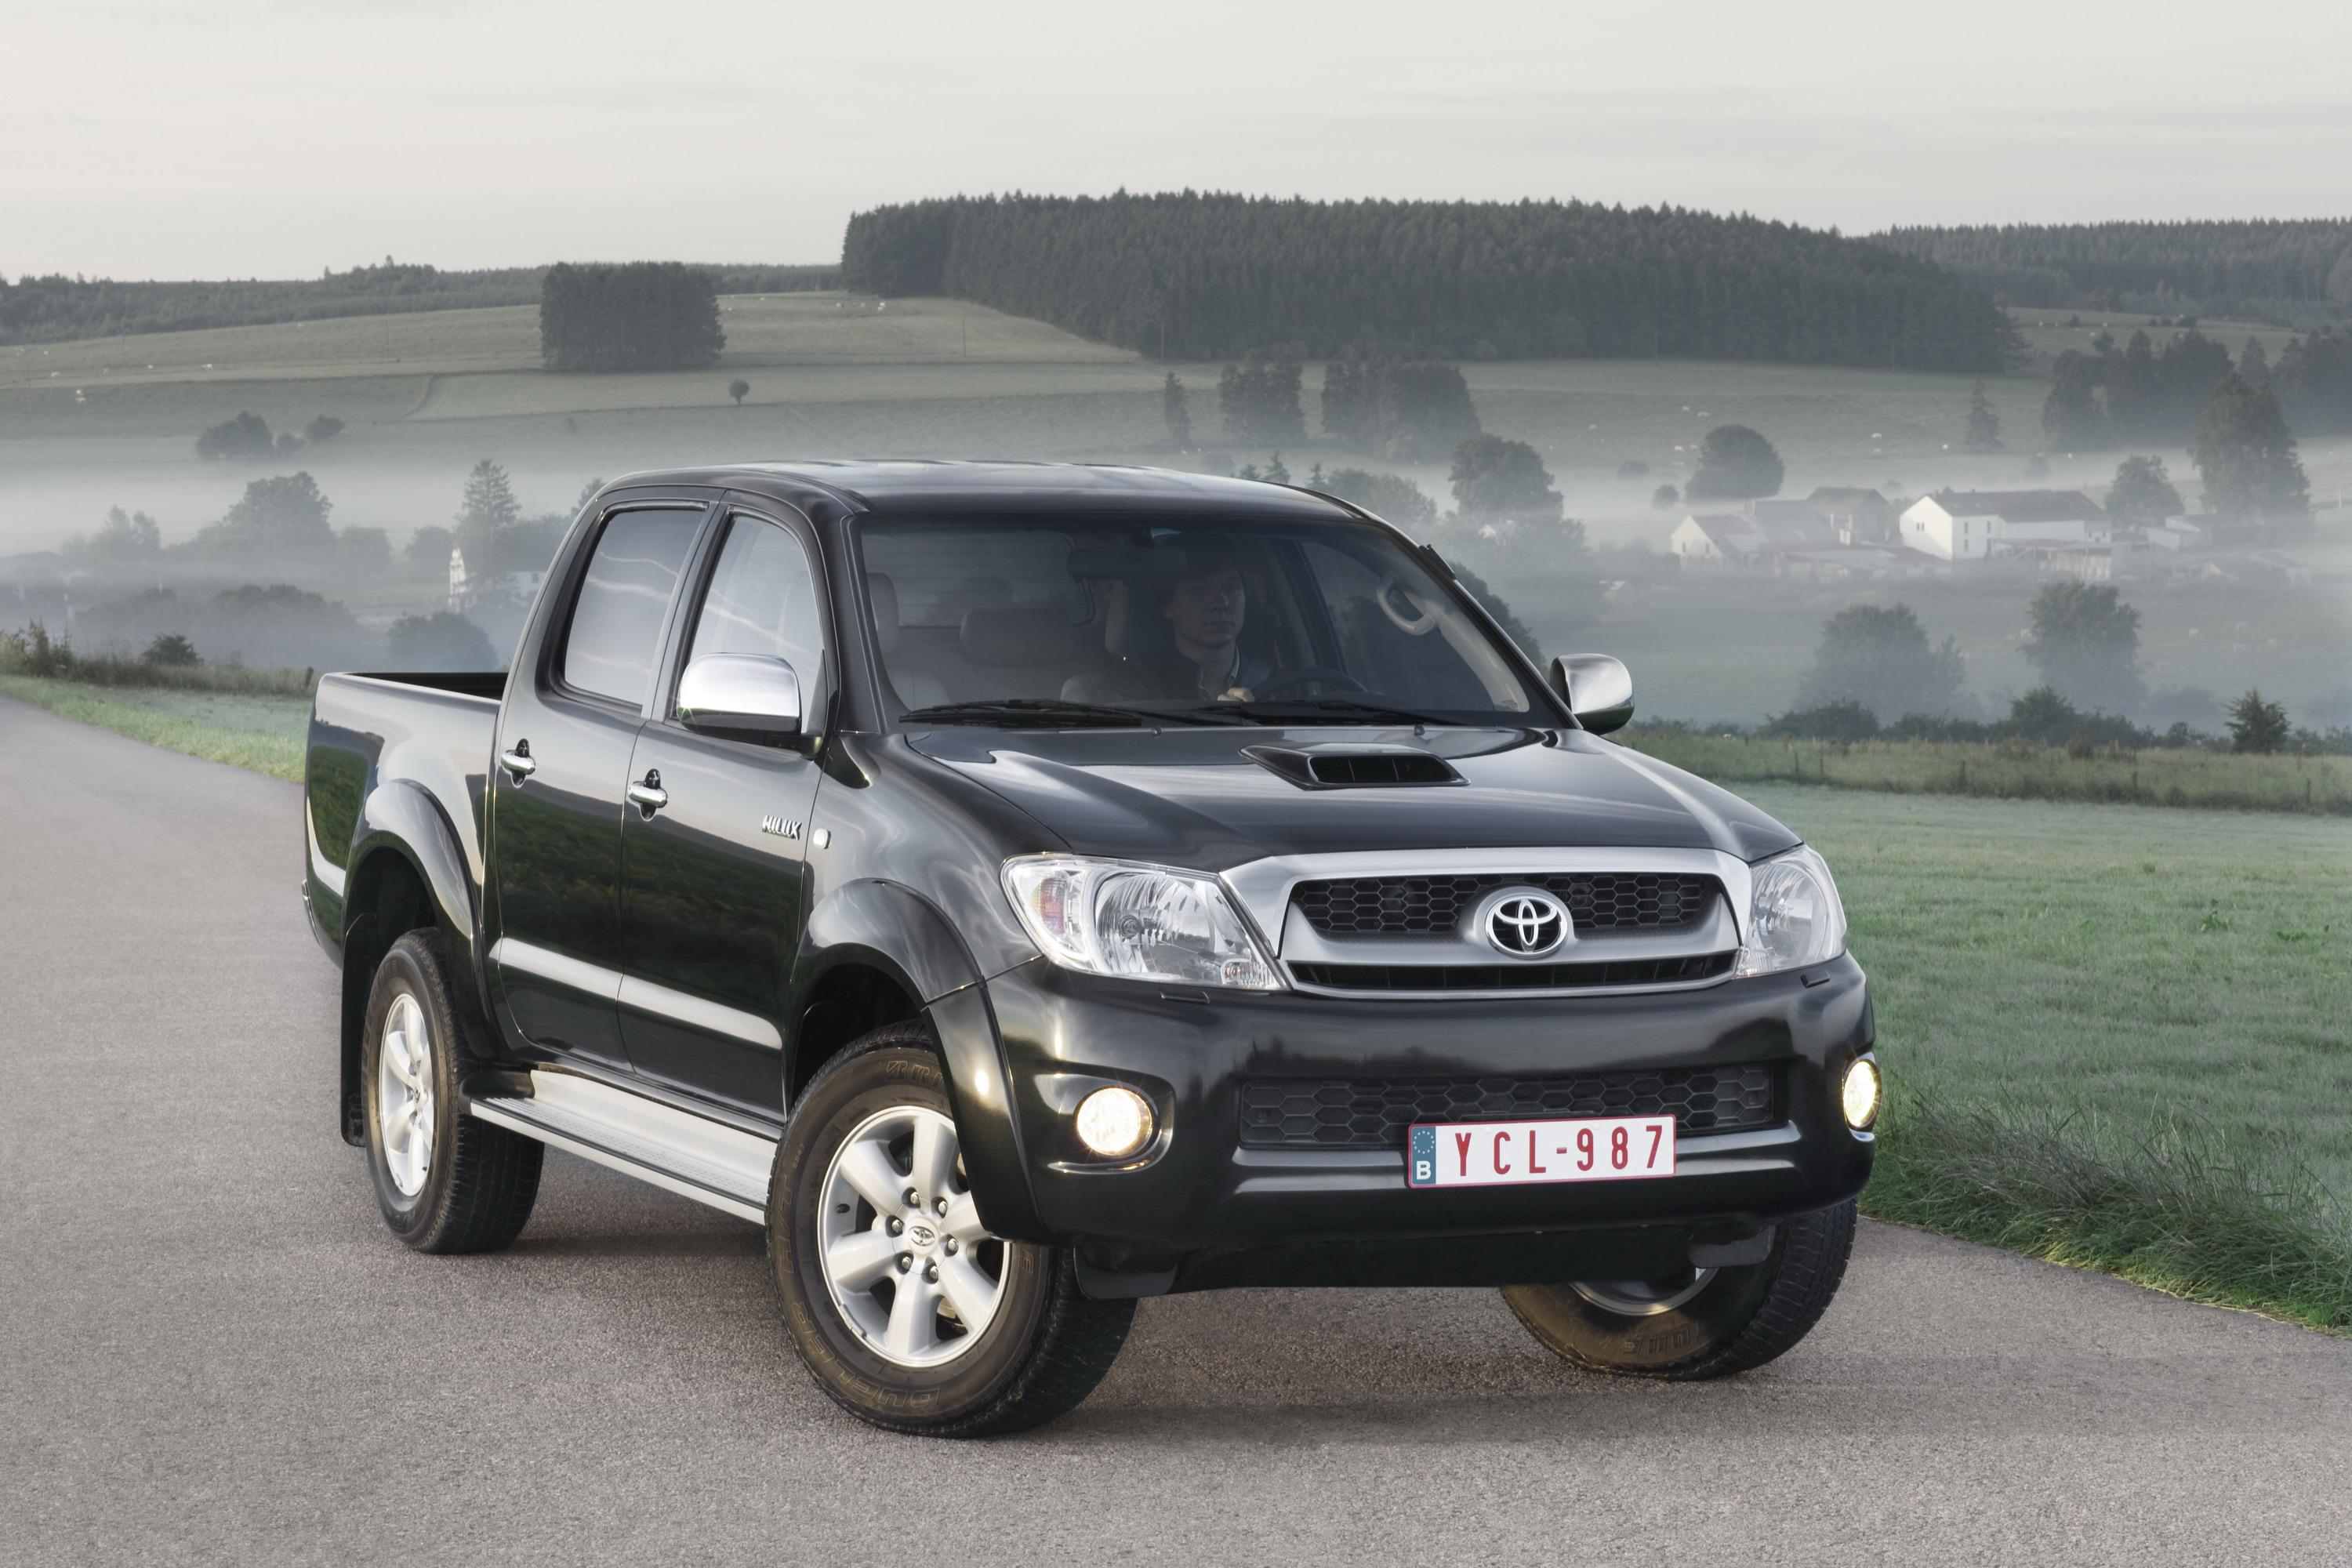 2009 Toyota Hilux Gallery 262255 Top Speed